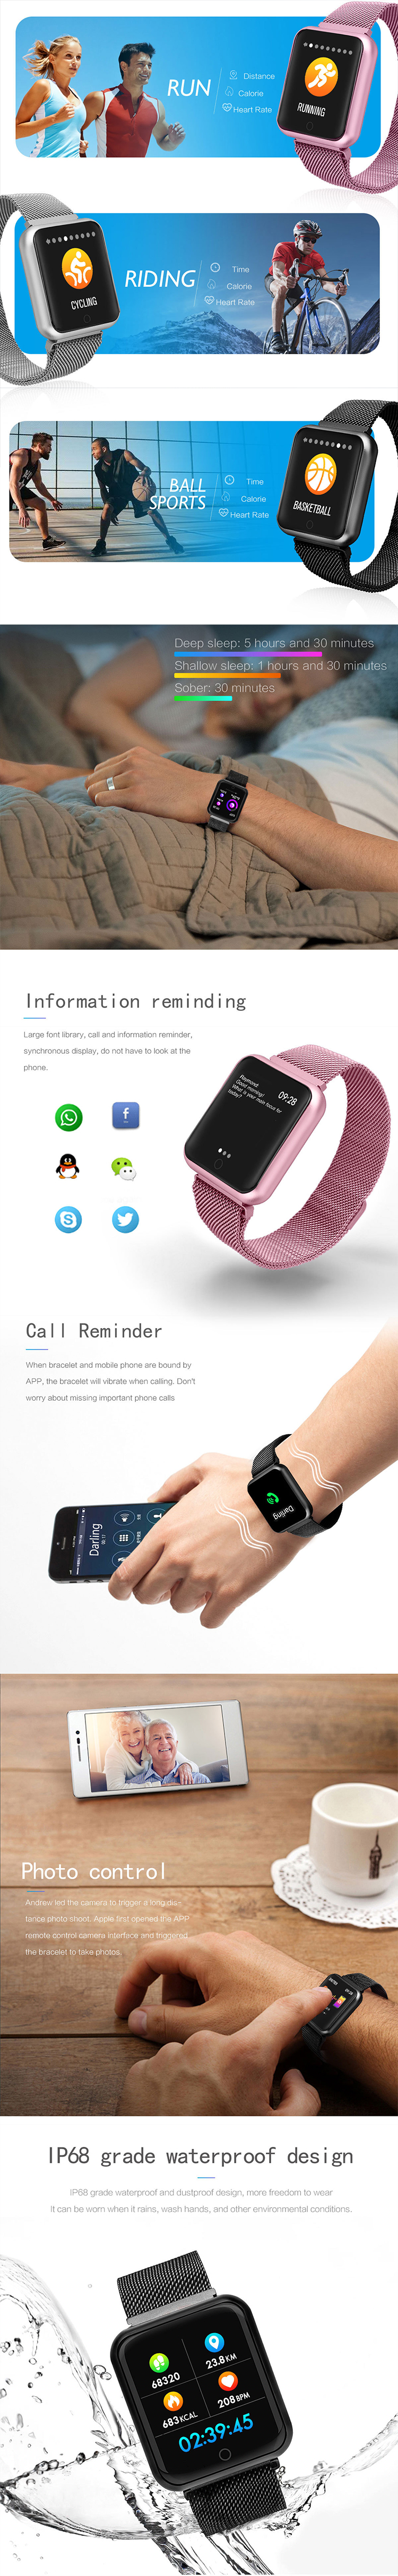 smart wristband IP68 waterproof meter step heart rate and blood pressure information push hands up bright screen call reminder